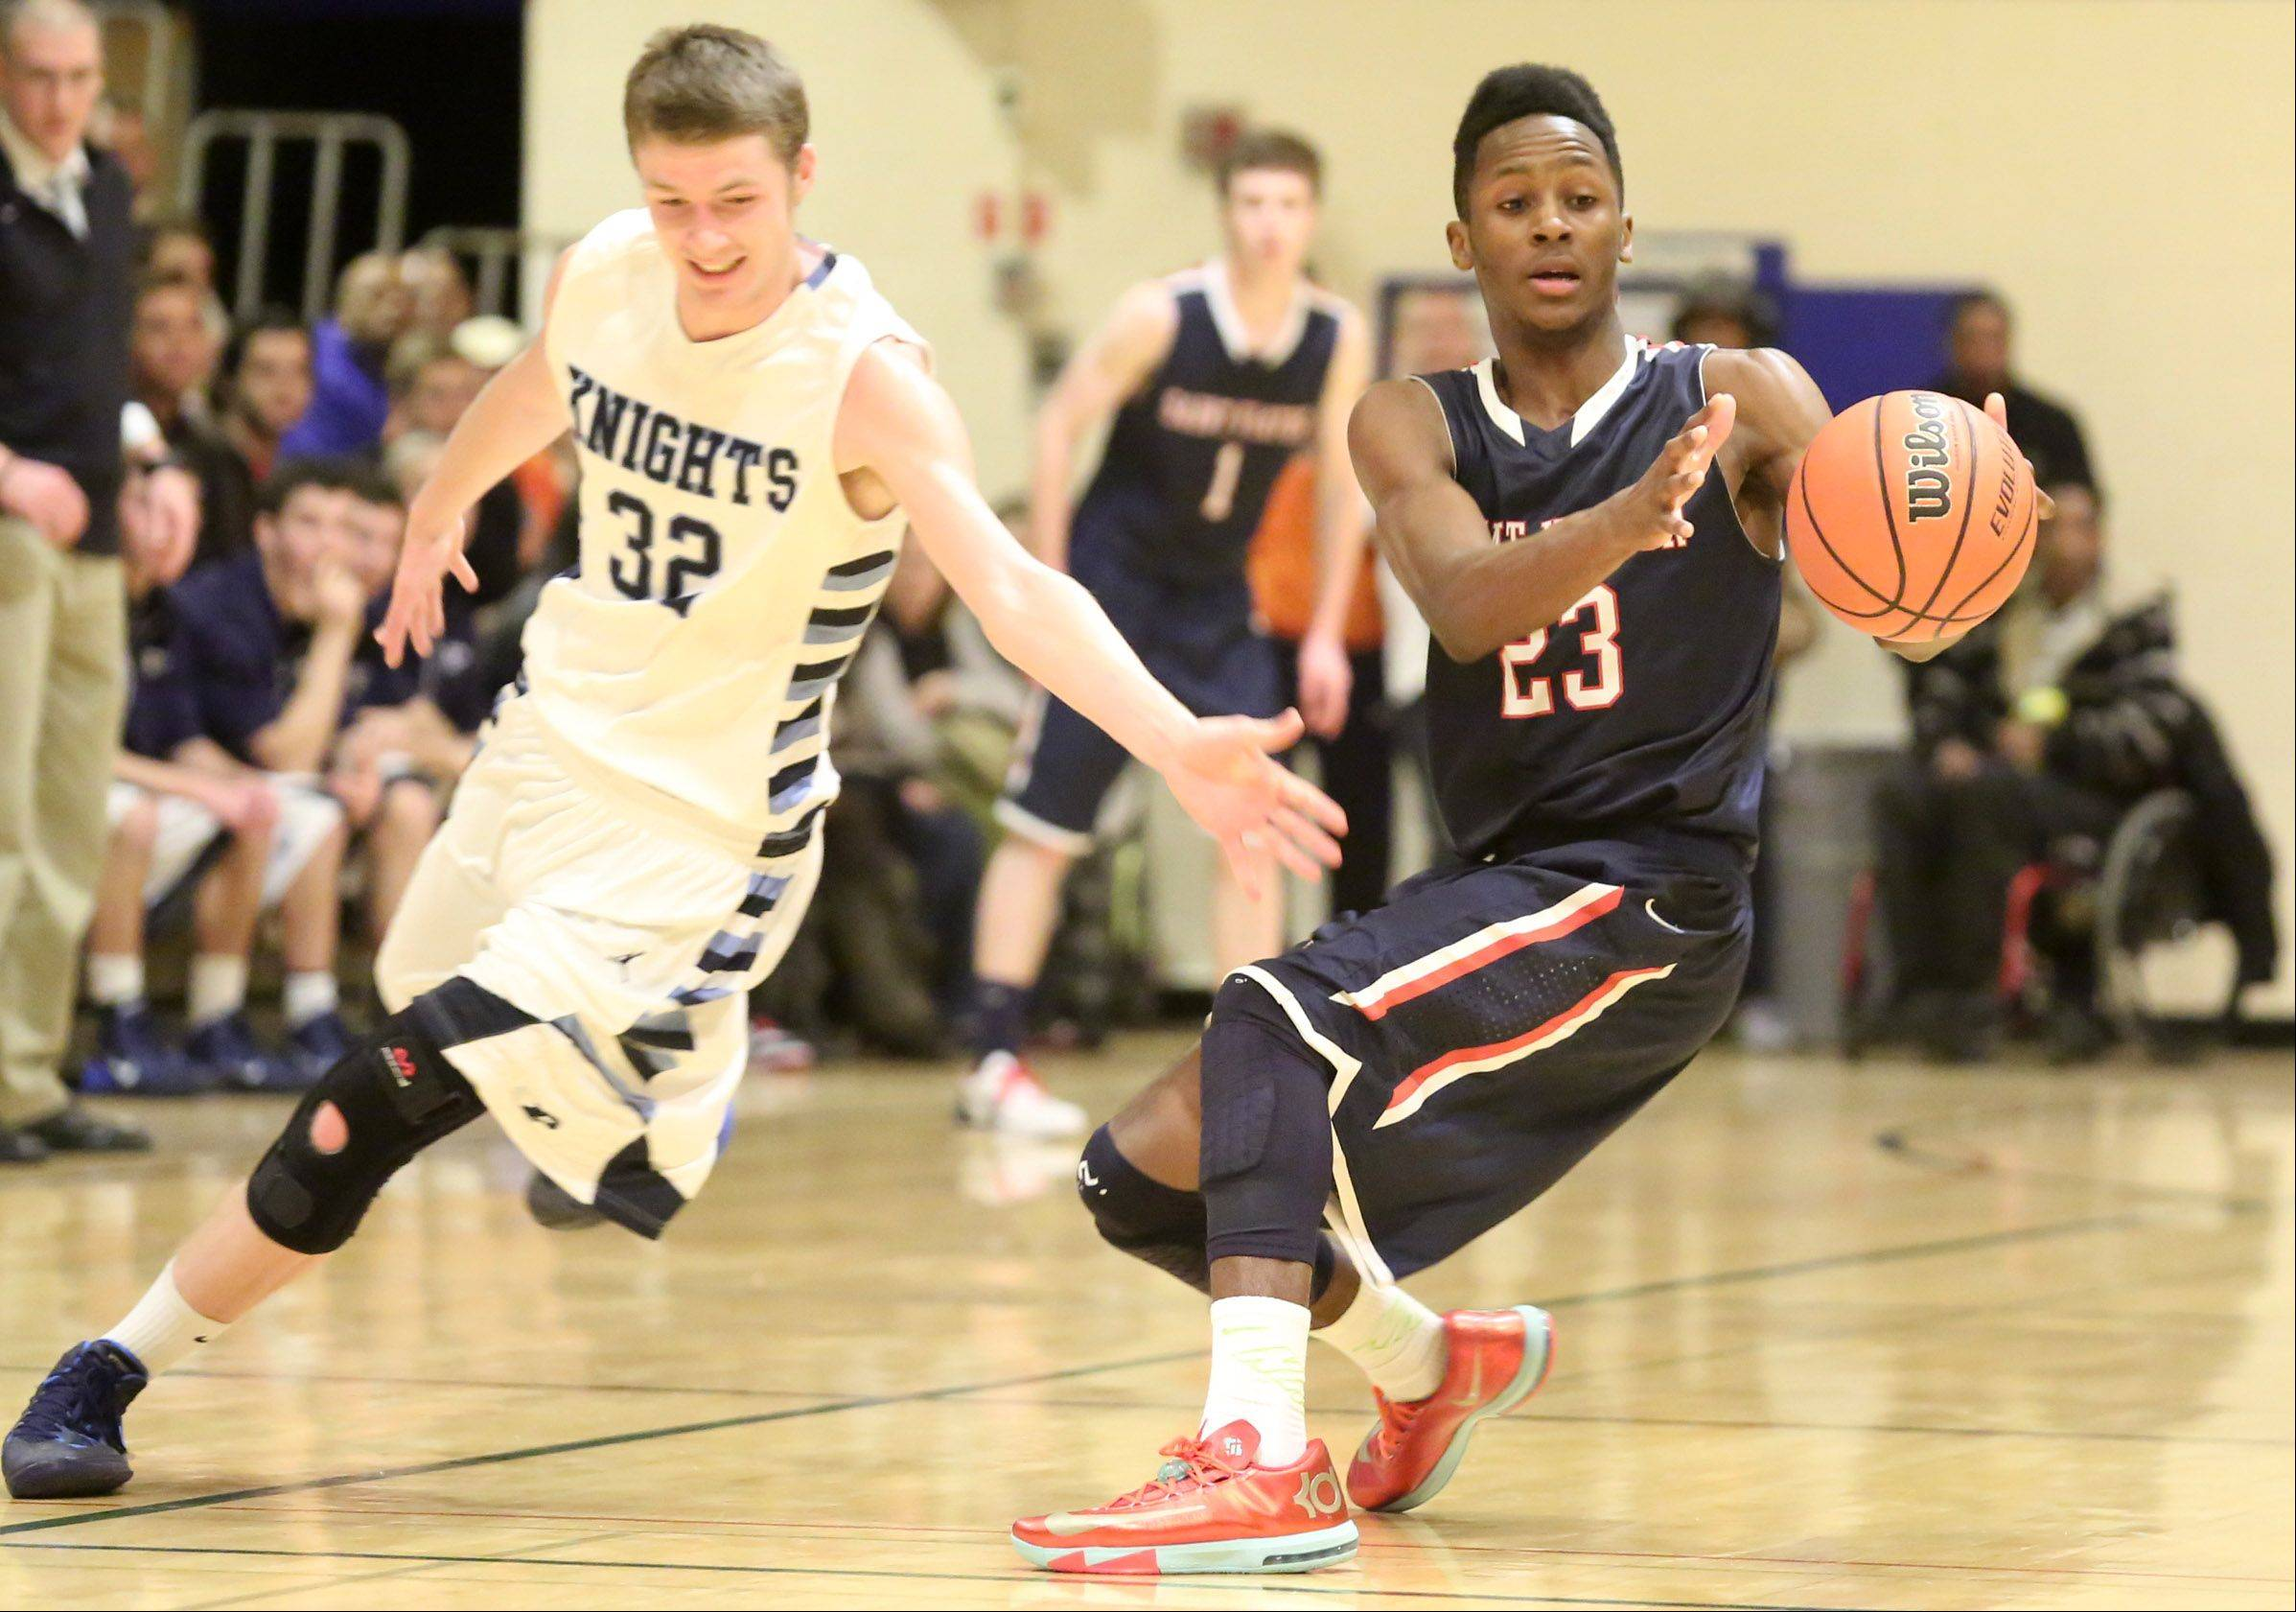 St. Viator guard Ore Arogundade pulls in a pass before Prospect defender Danny Thomas can step in at the Wheeling Hardwood Classic on Friday.